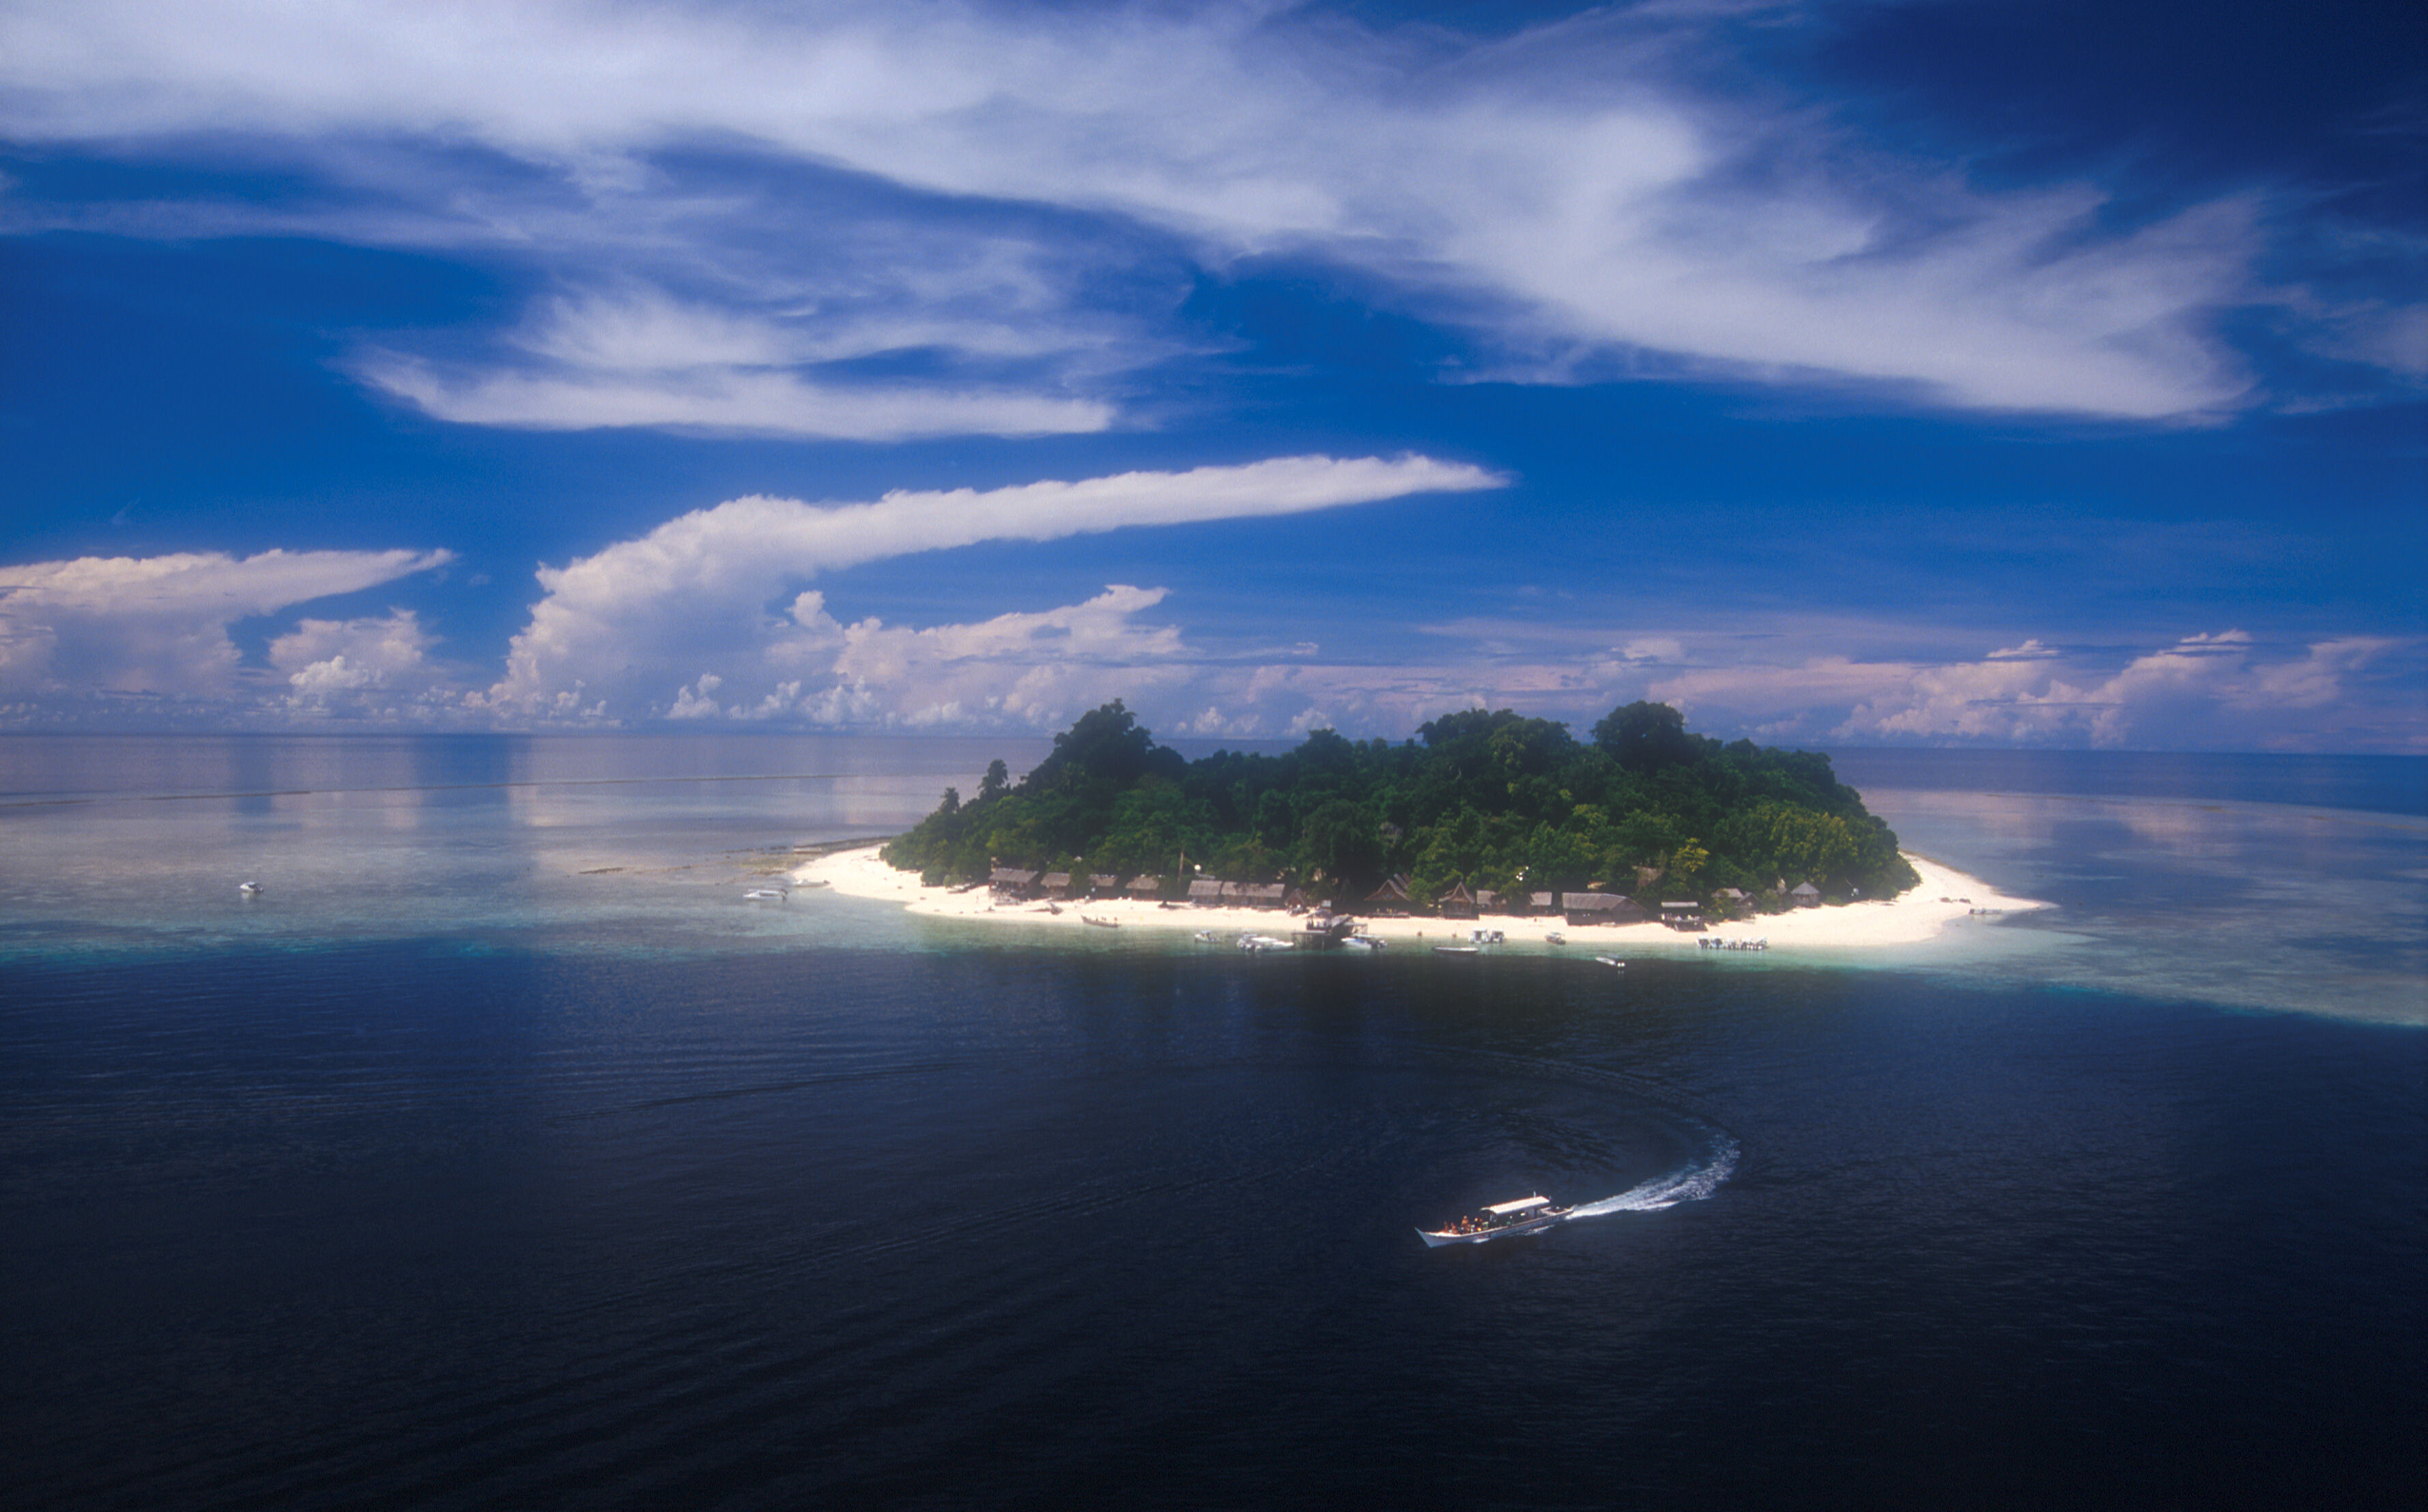 Sipidan Island - Scuba Diving at its Best